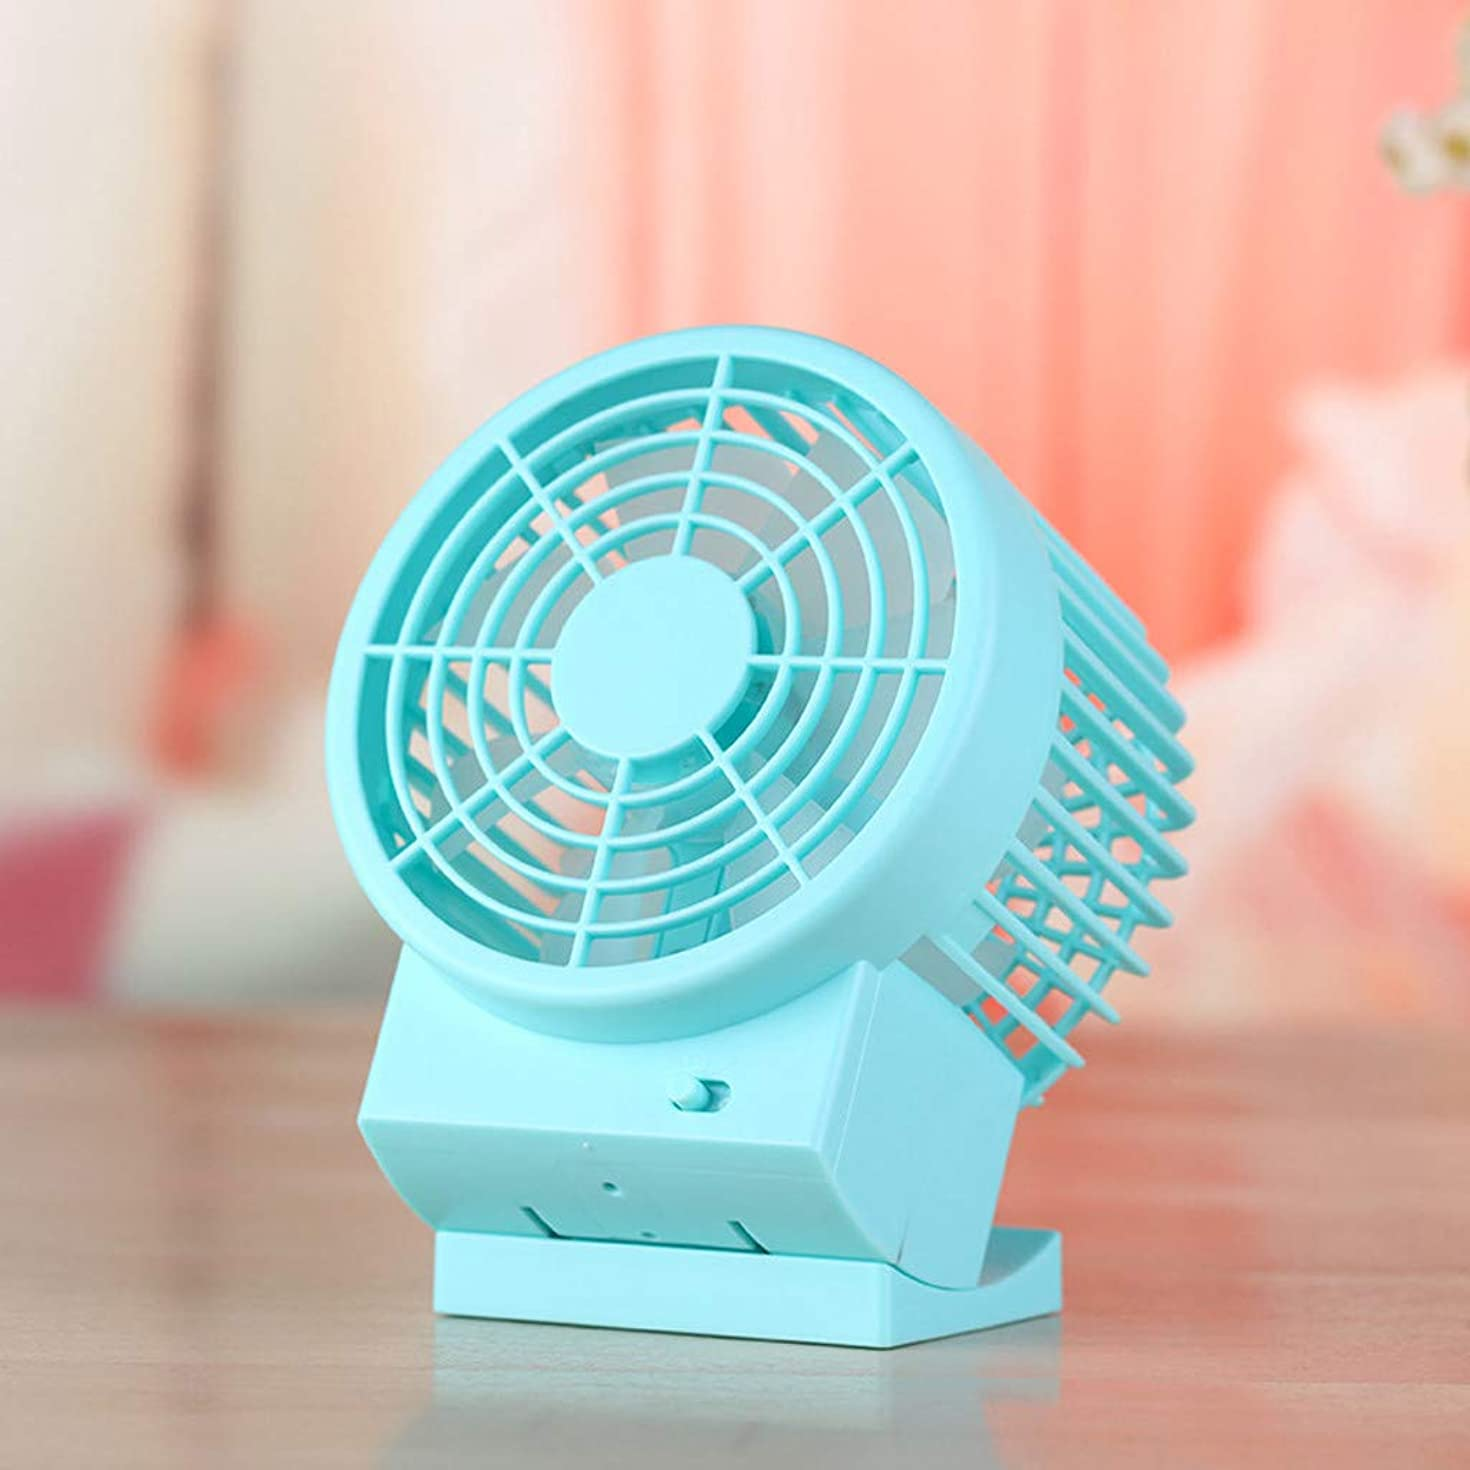 Maikouhai Portable Mini Handheld Fans Small Personal Pocket Little Fan for Home Office Bedroom Table - ABS Material, 4.72x6.02x3.39 Inch (Blue)